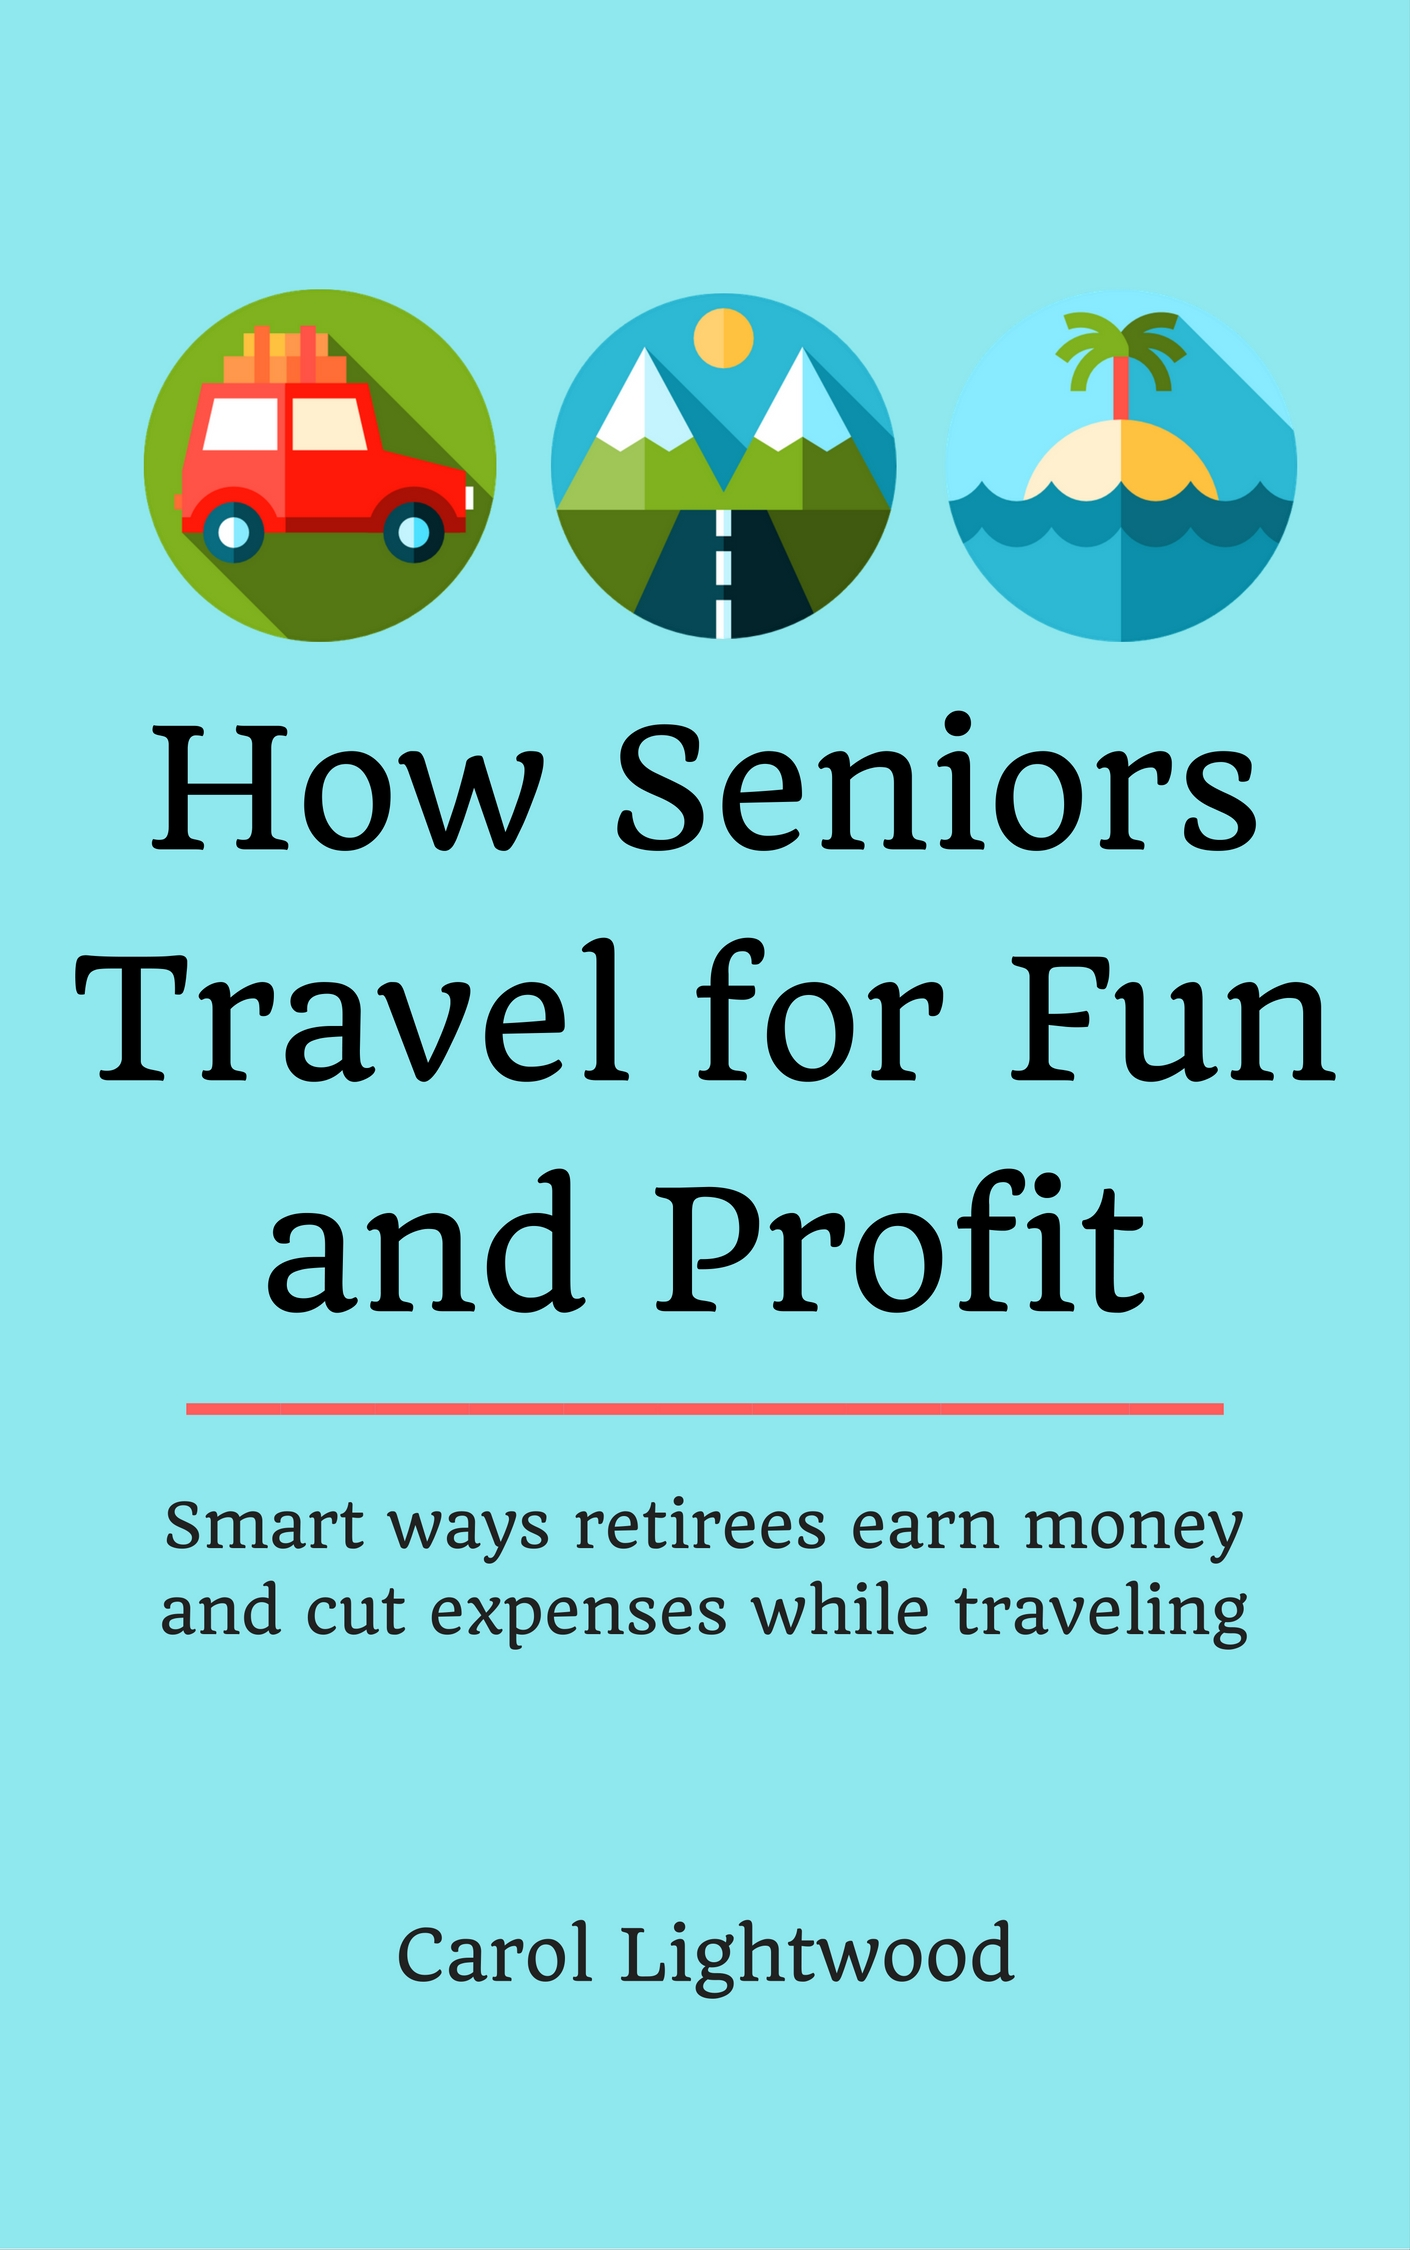 my new book is about retiree travel jobs but i am not going to do a rh lightwoodpublishing wordpress com travel guide books for italy travel guide books for italy